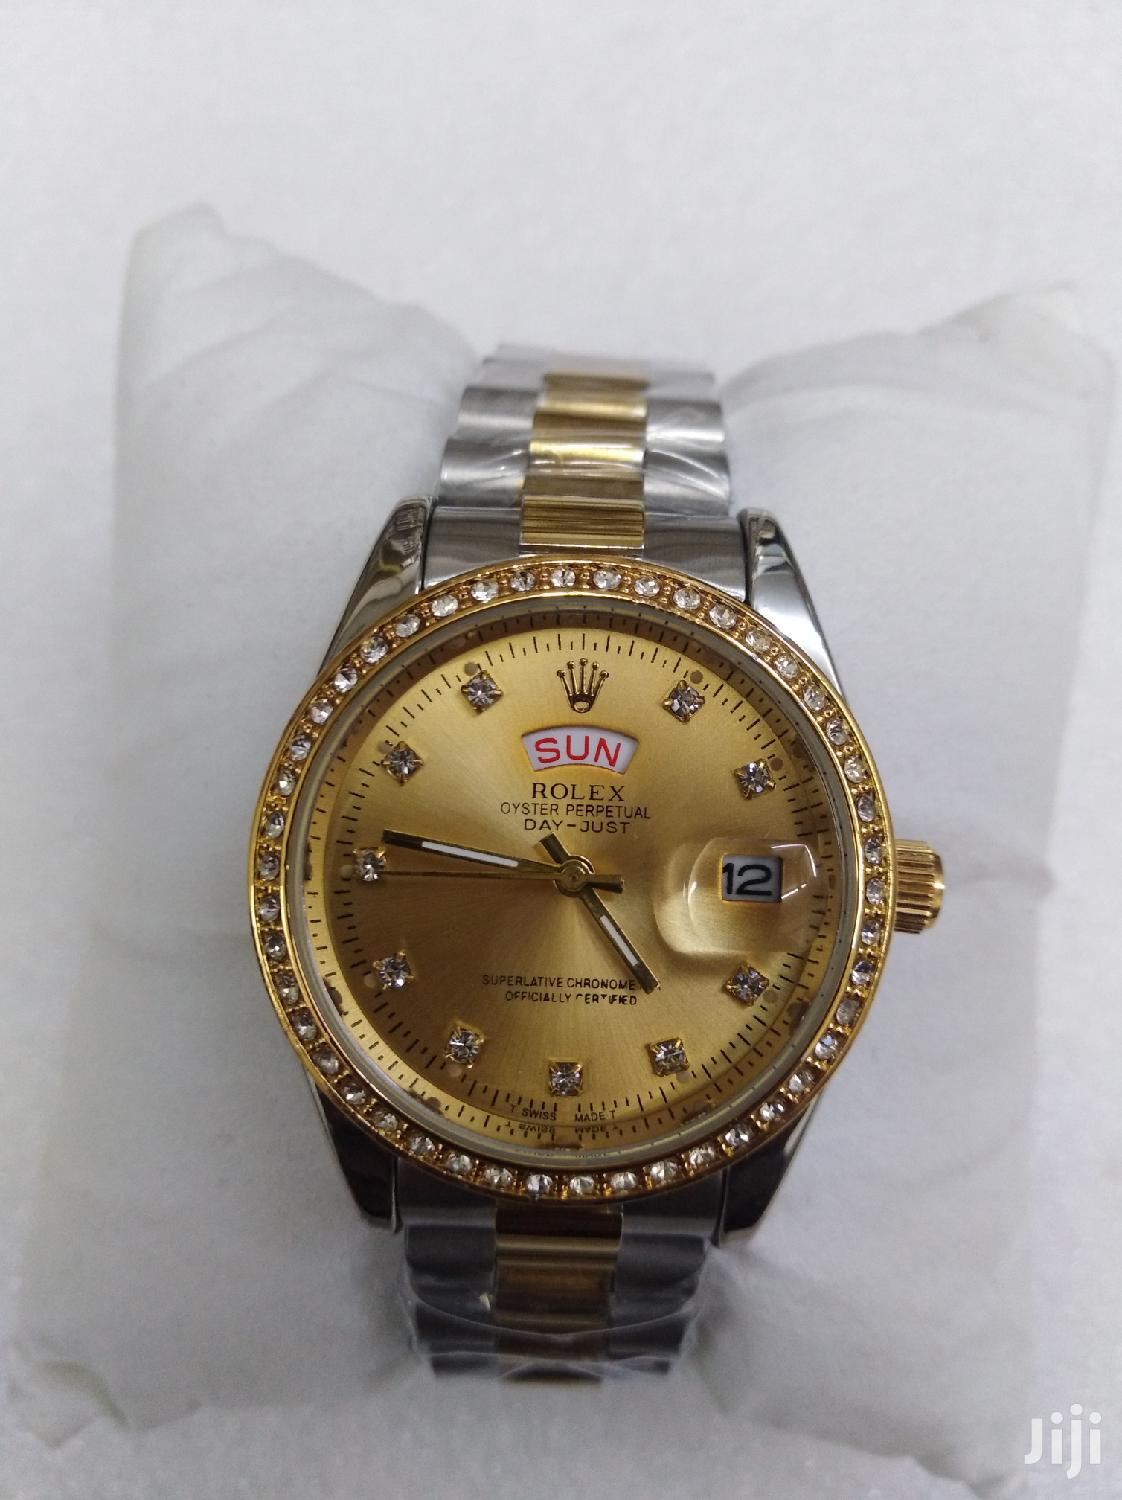 Archive: Rolex Watches for Ladies